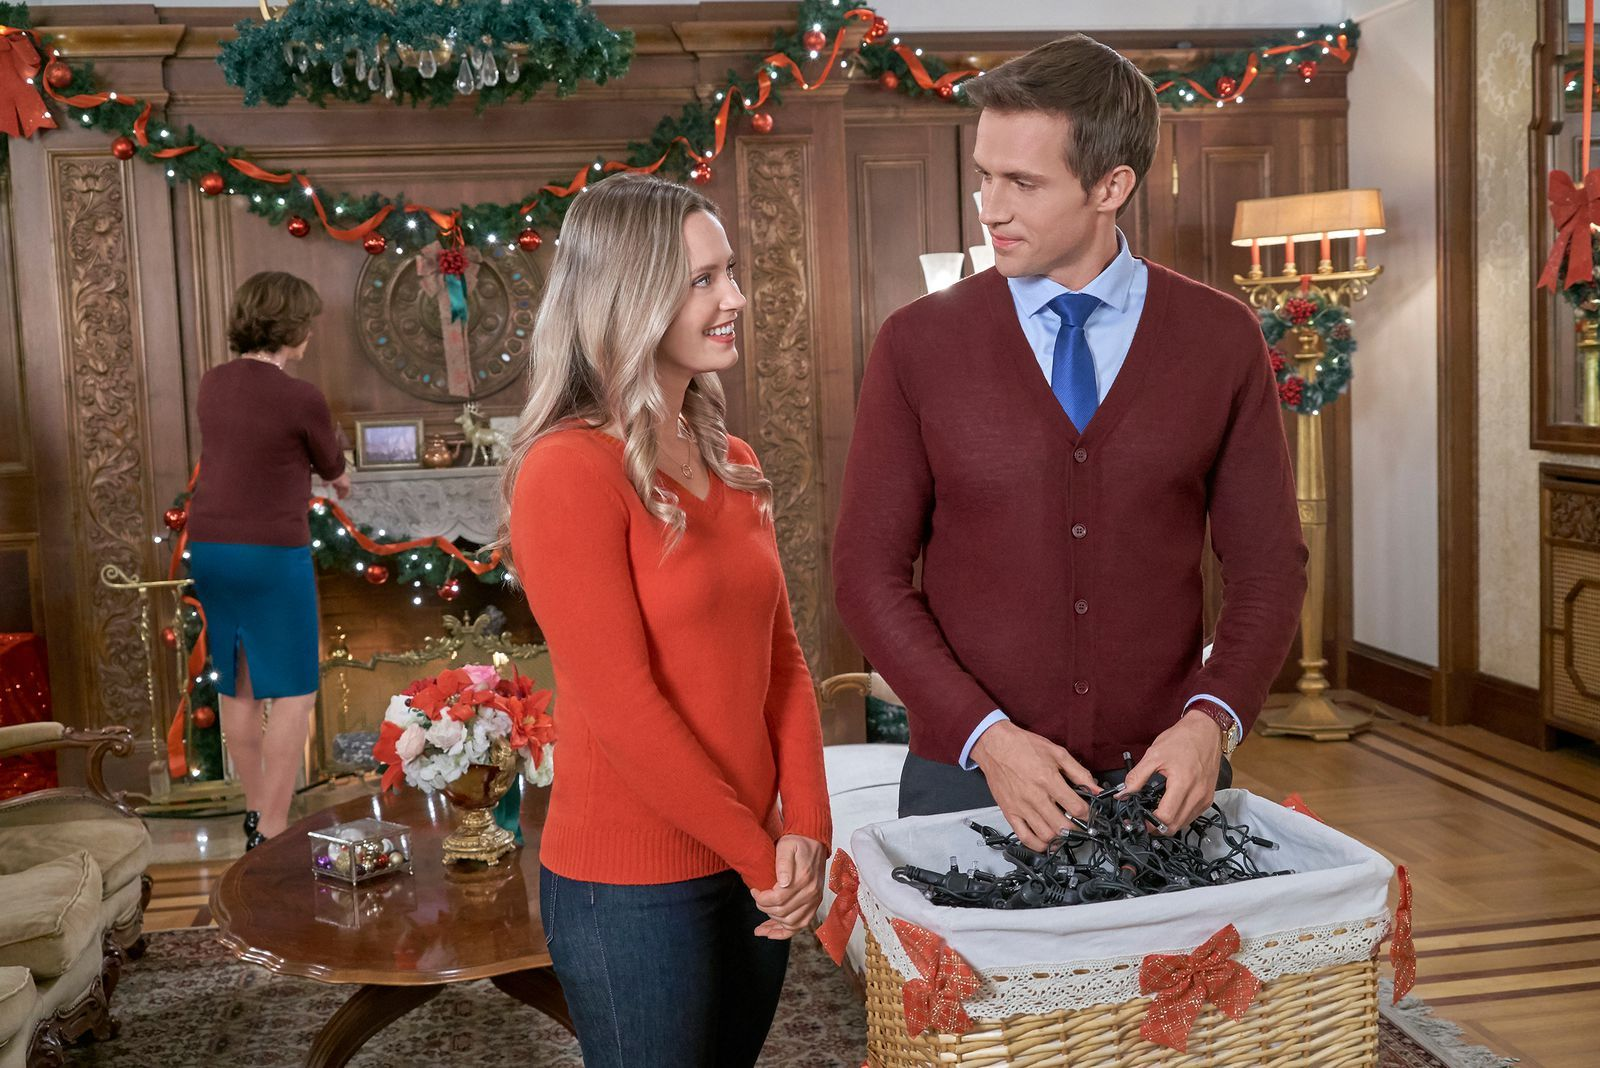 Hallmark S Christmas At The Palace Was Filmed At One Of The Most Regal Places Ever Merritt Patterson Hallmark Christmas Movies Hallmark Movies